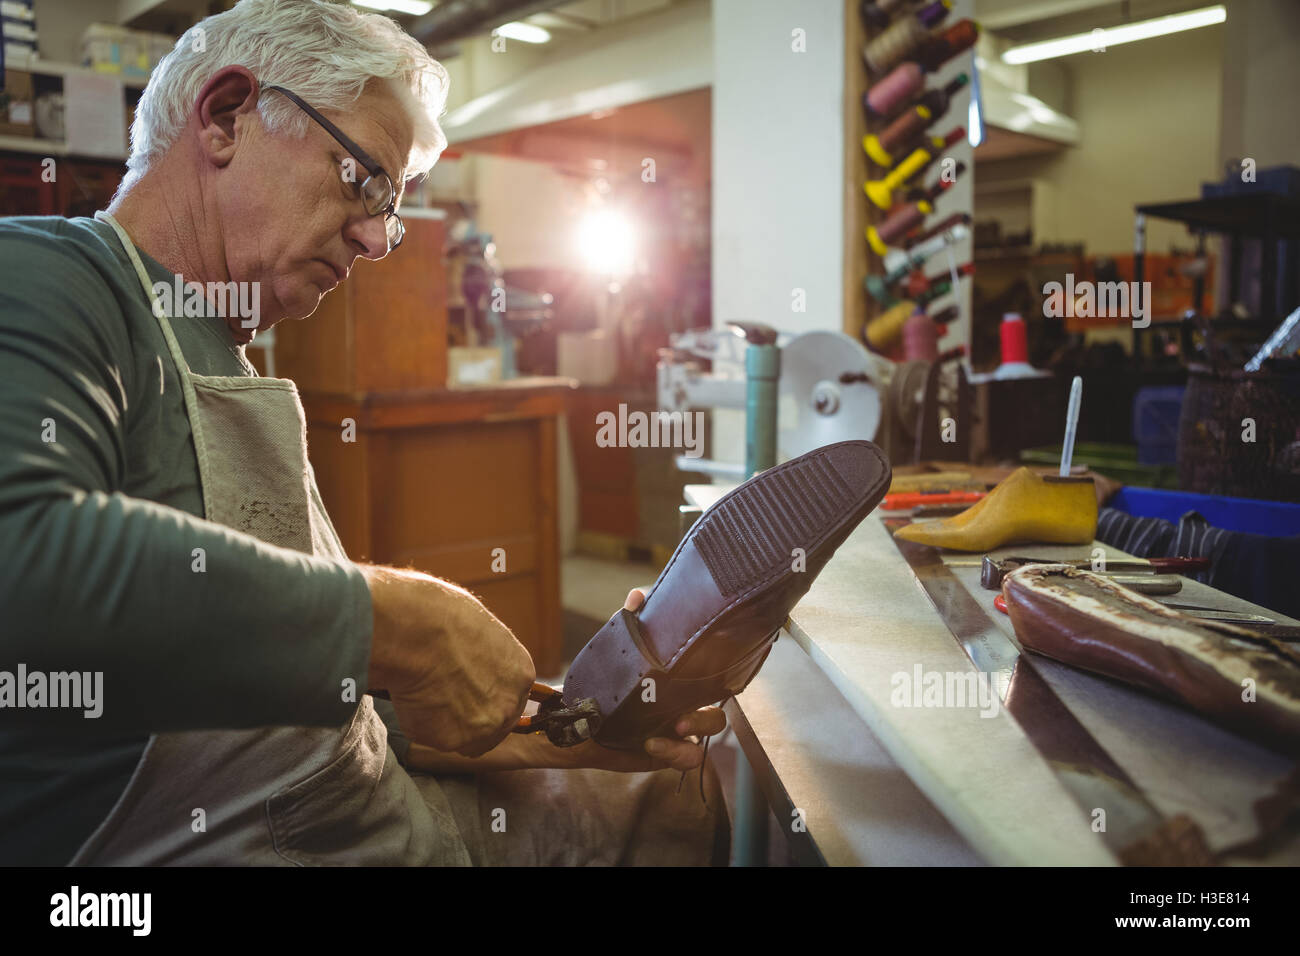 Shoemaker repairing a shoe - Stock Image